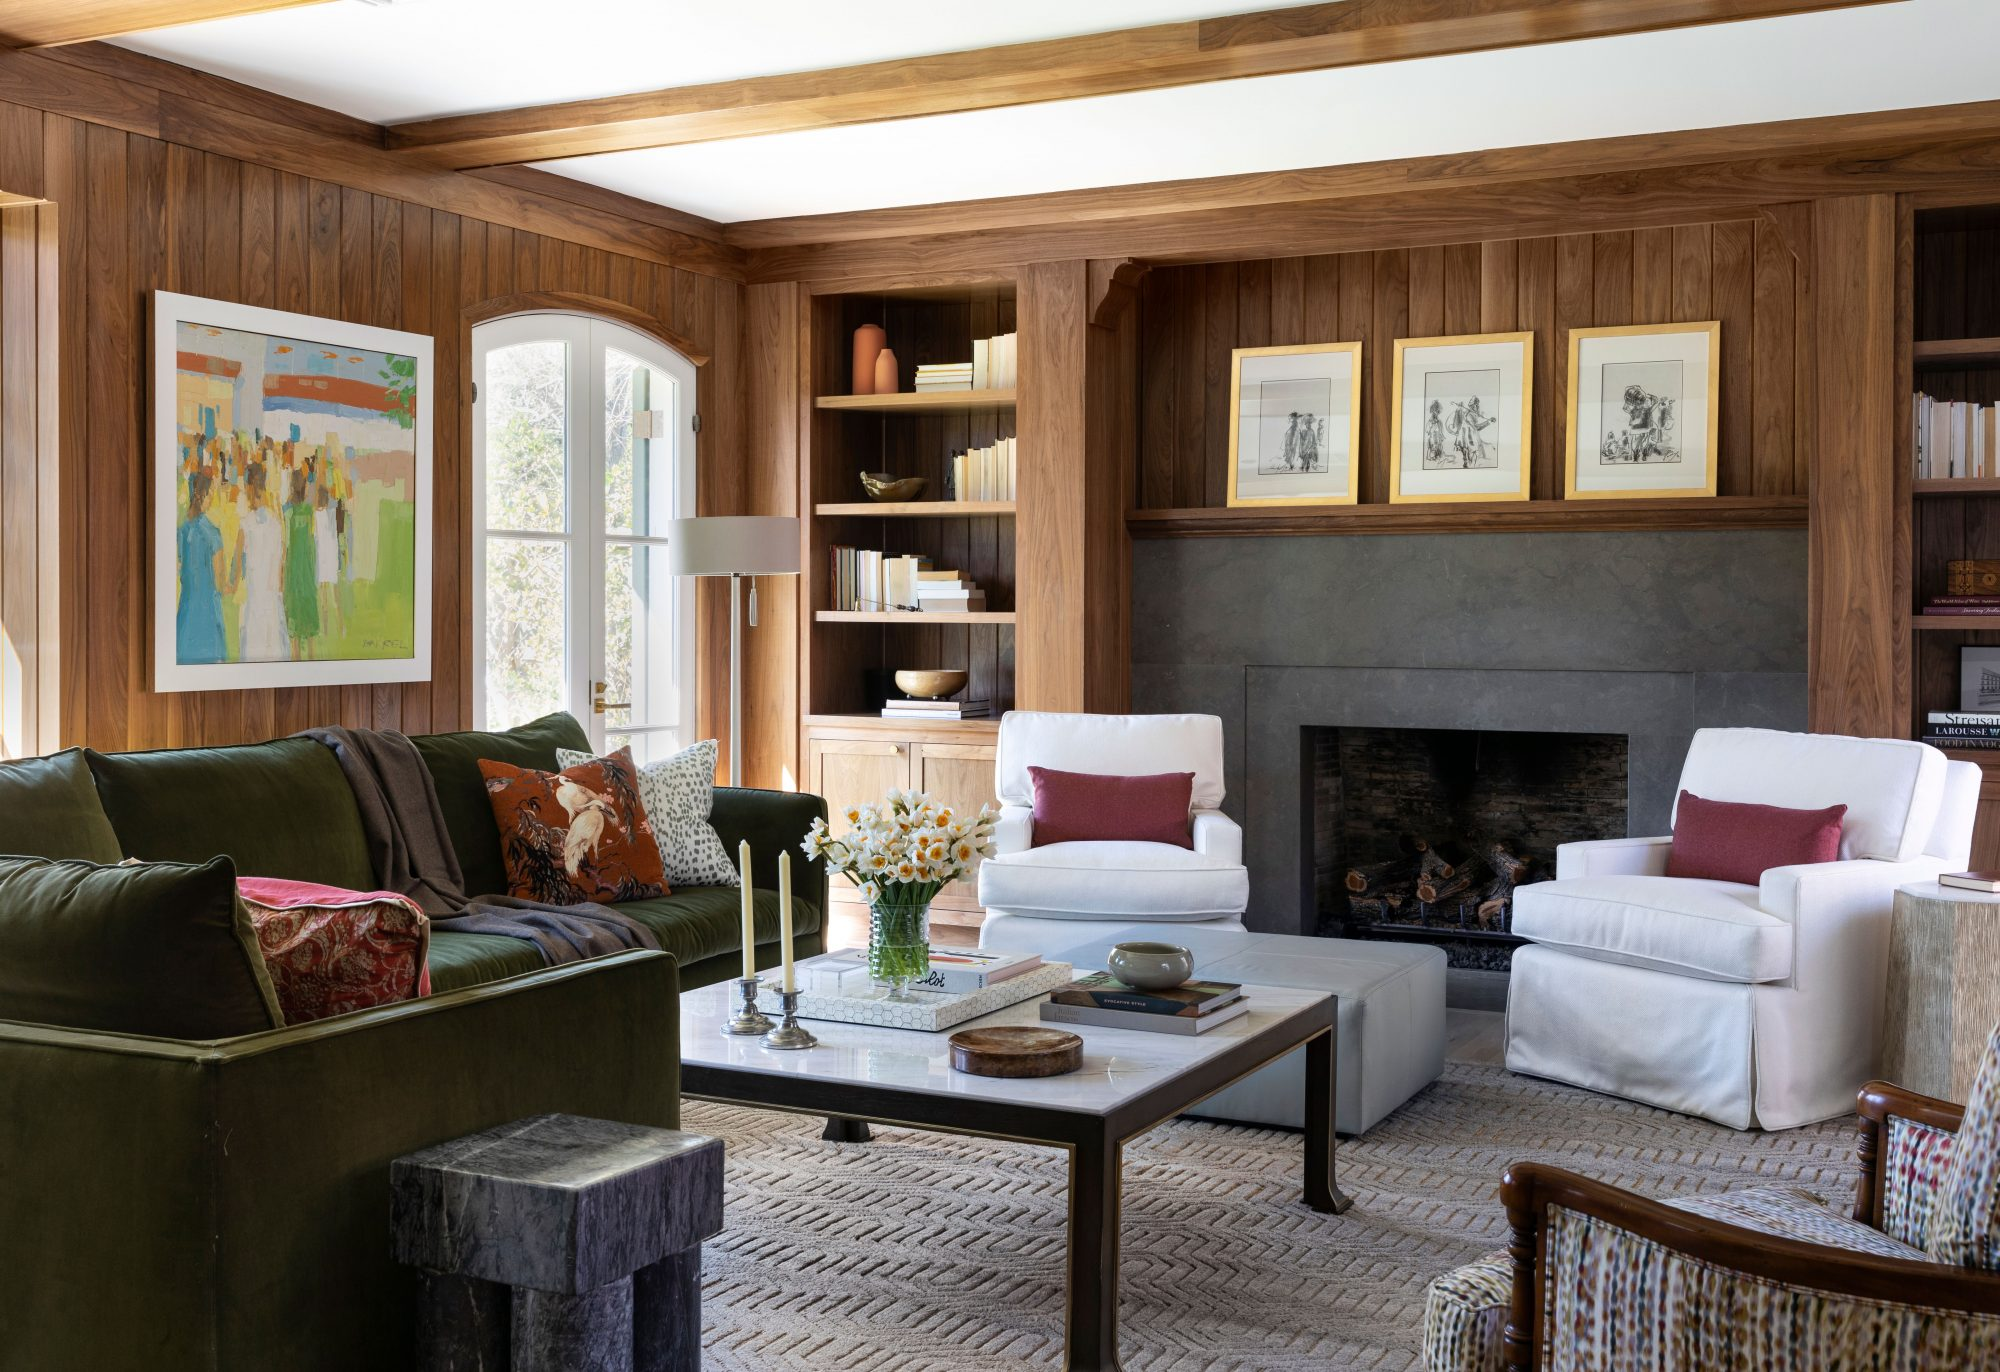 Living Room with Wood Paneled Walls